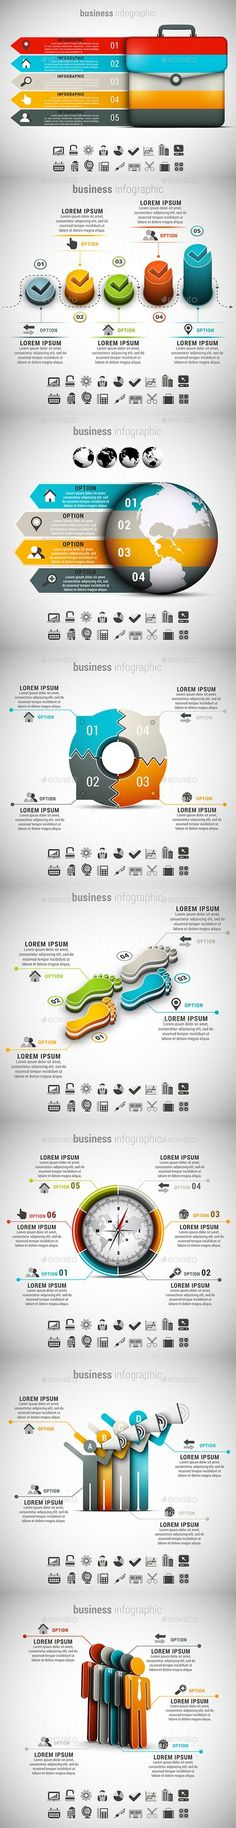 Infographic Elements Infographic, Infographics and Infographic